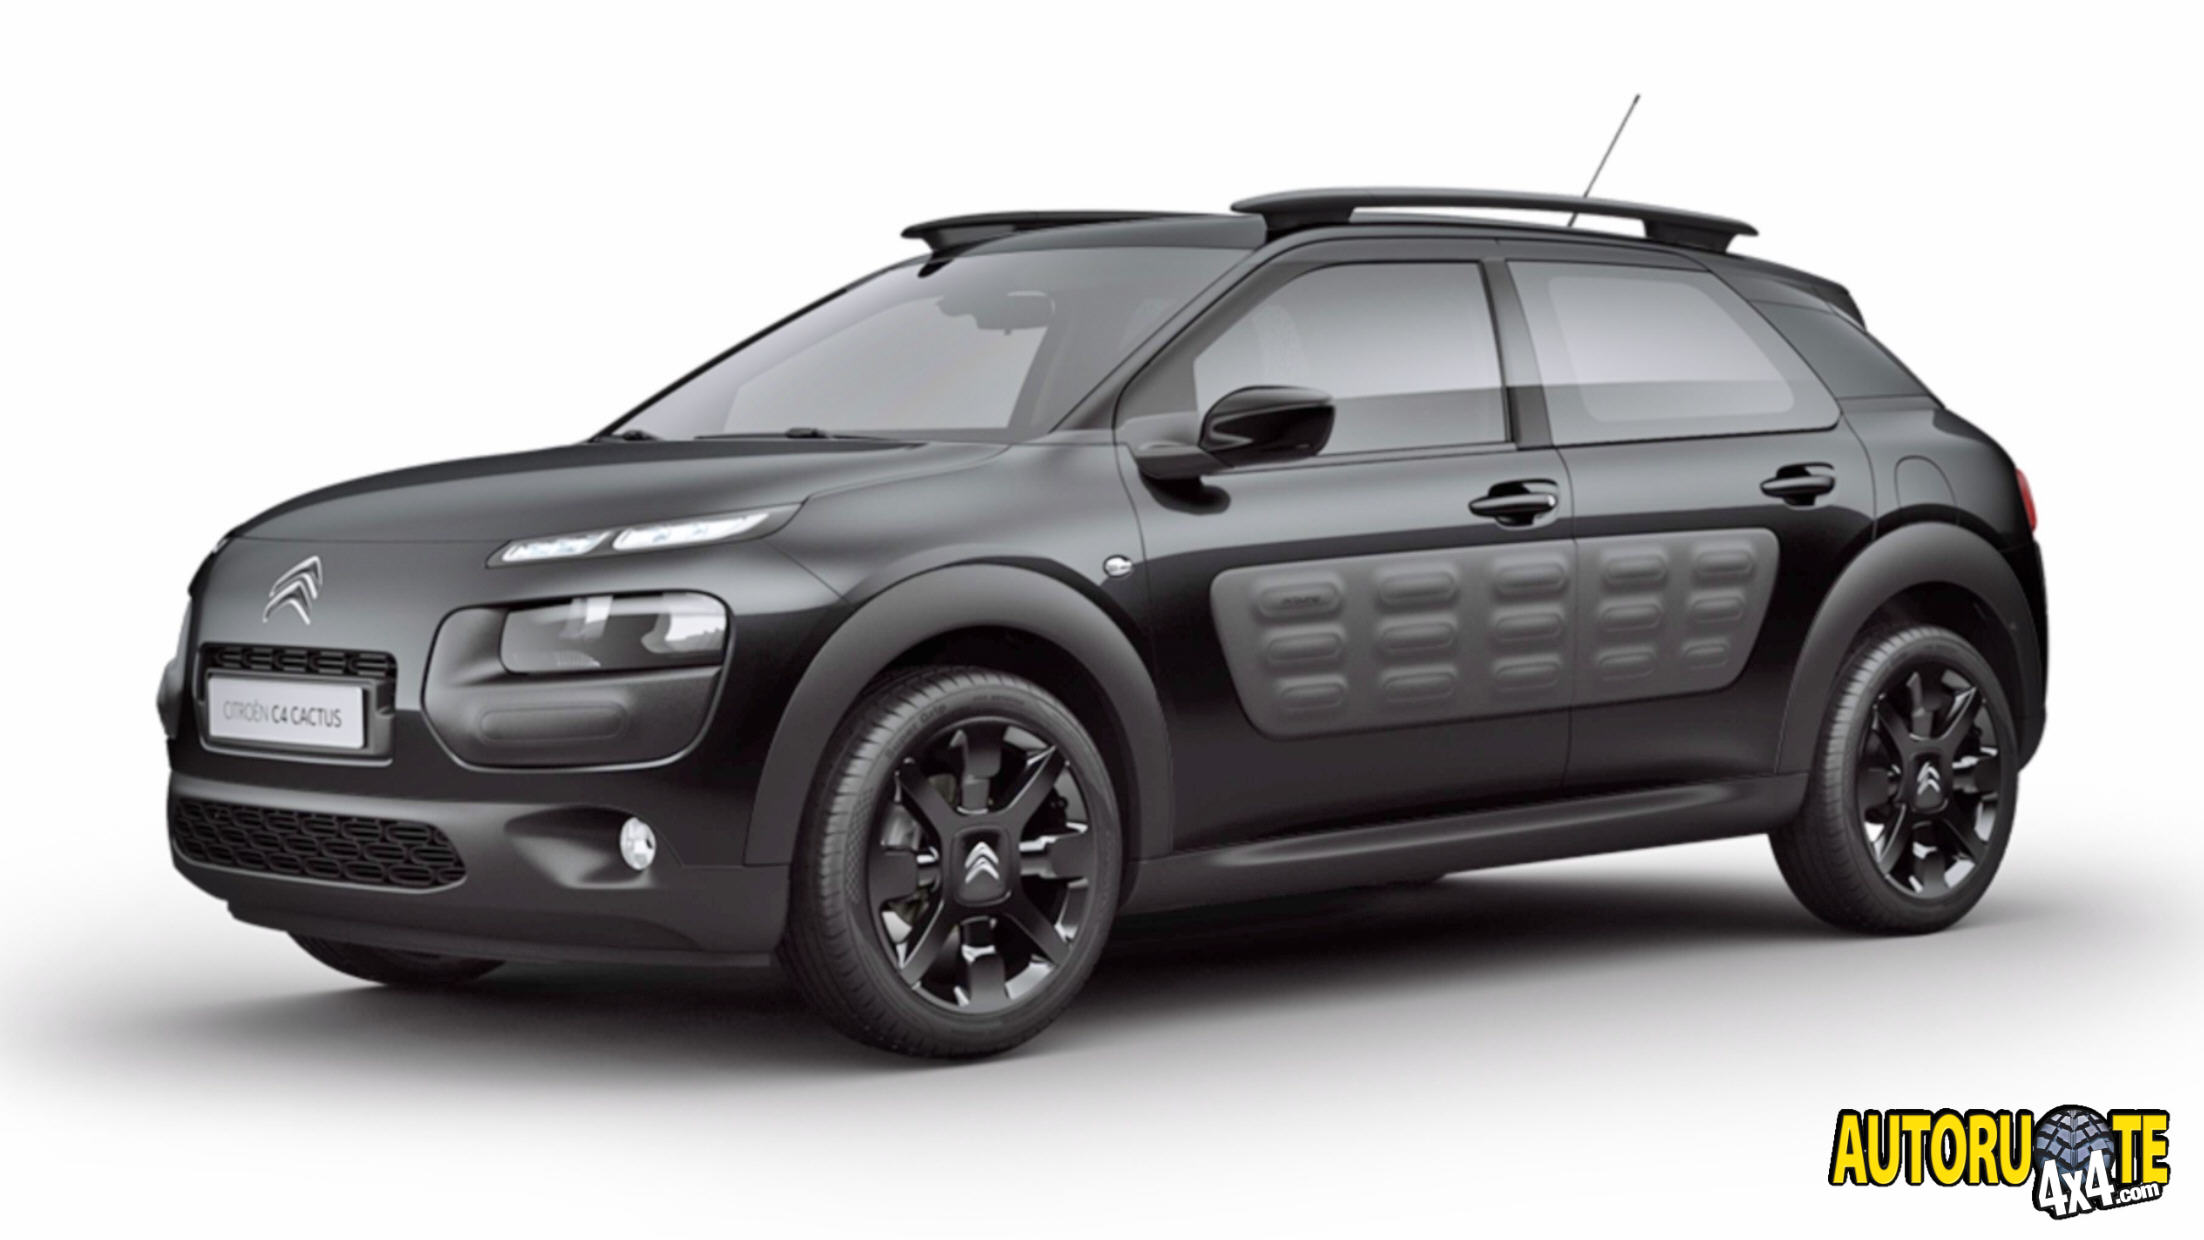 autoruote 4x4 web magazine sulla mobilit 4x4 e sull 39 offroad citroen c4 cactus just black. Black Bedroom Furniture Sets. Home Design Ideas